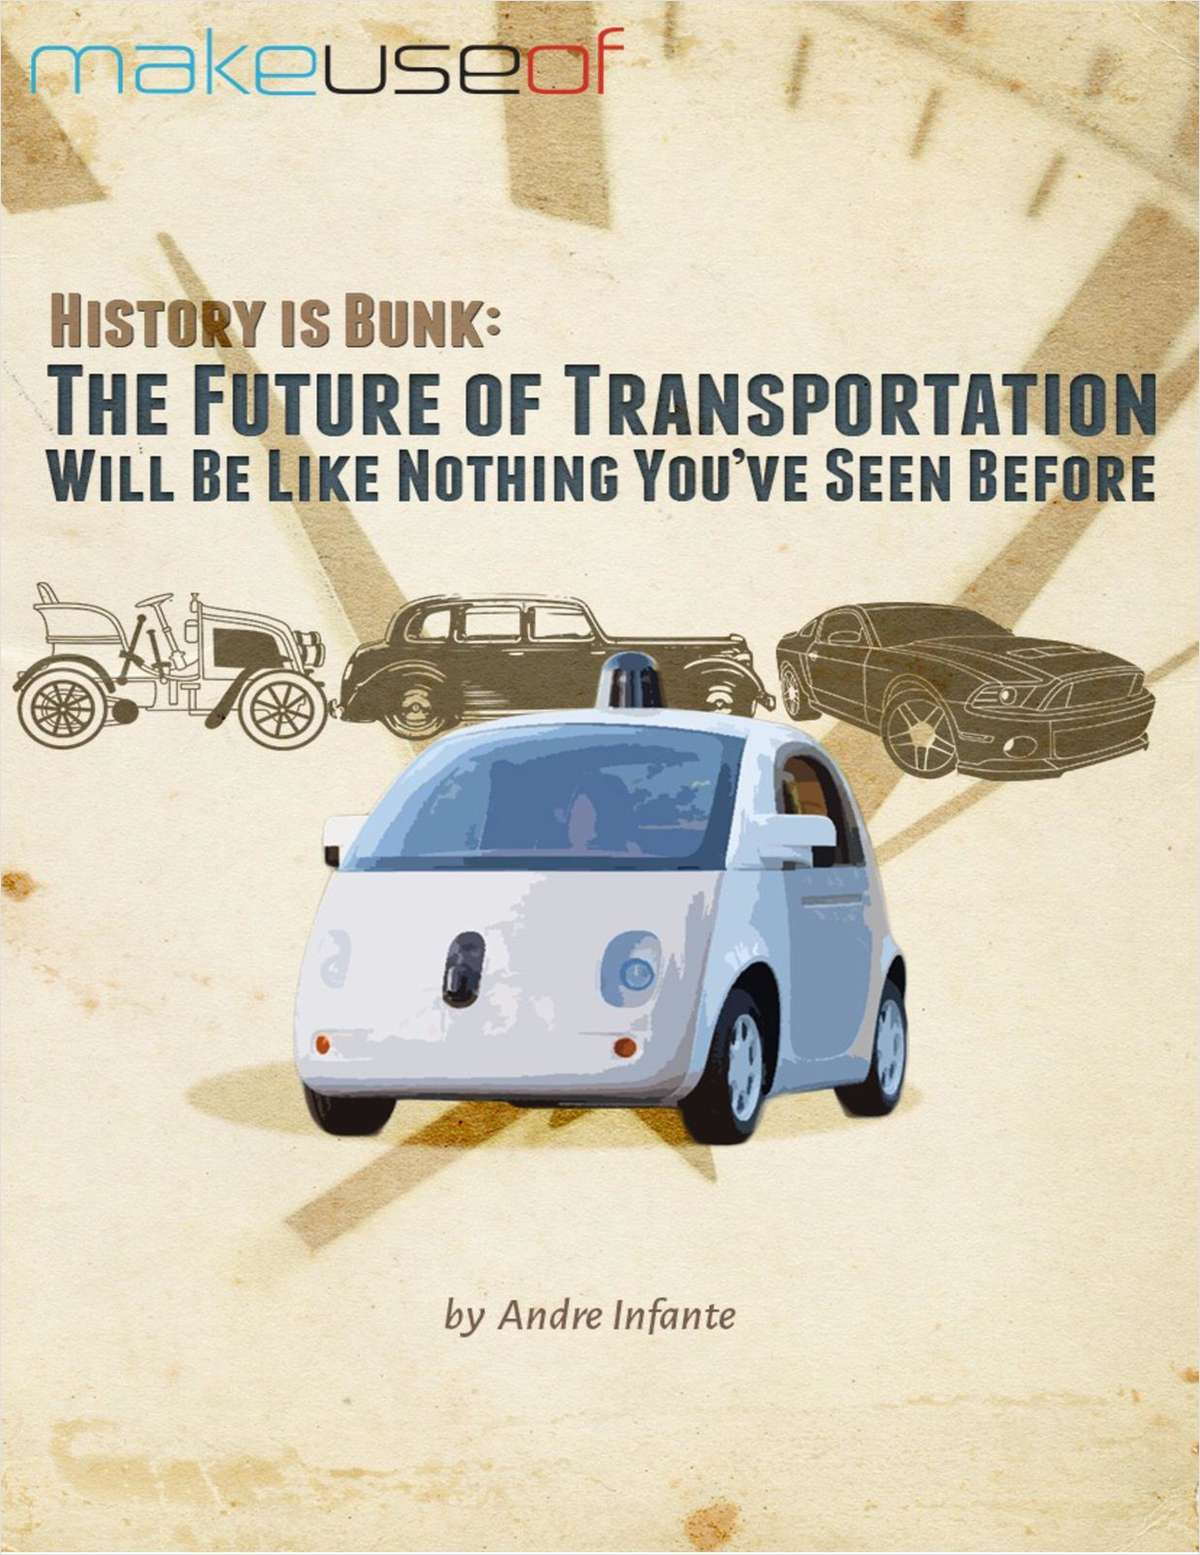 History Is Bunk: The Future of Transportation Will Be Like Nothing You've Seen Before